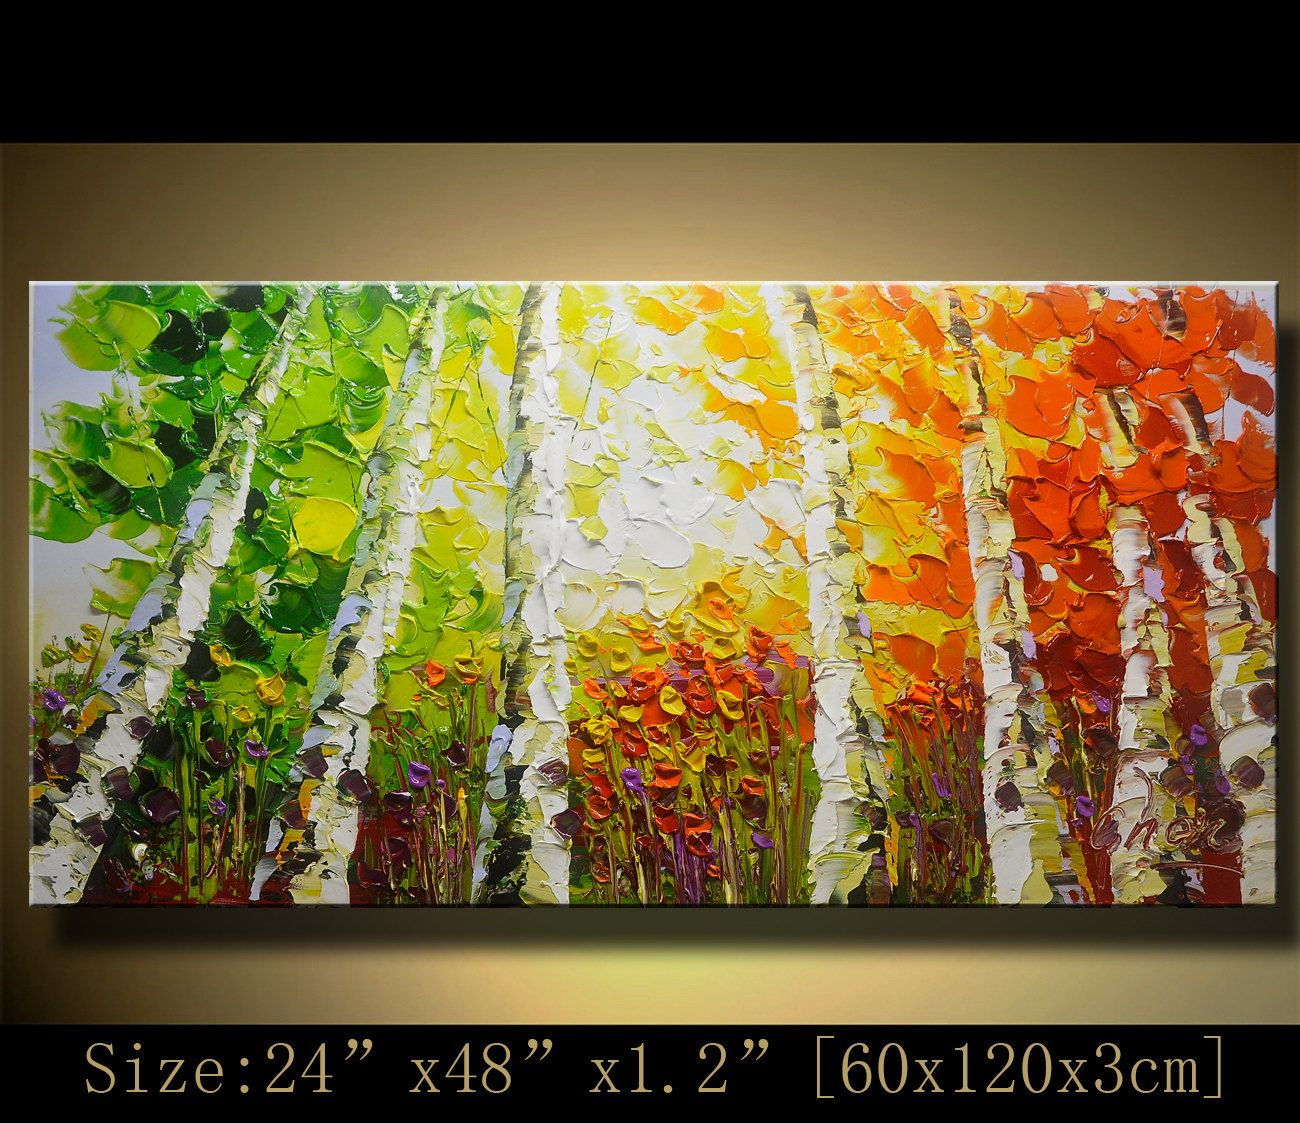 Famous Wall Art By Size Image Collection - The Wall Art Decorations ...